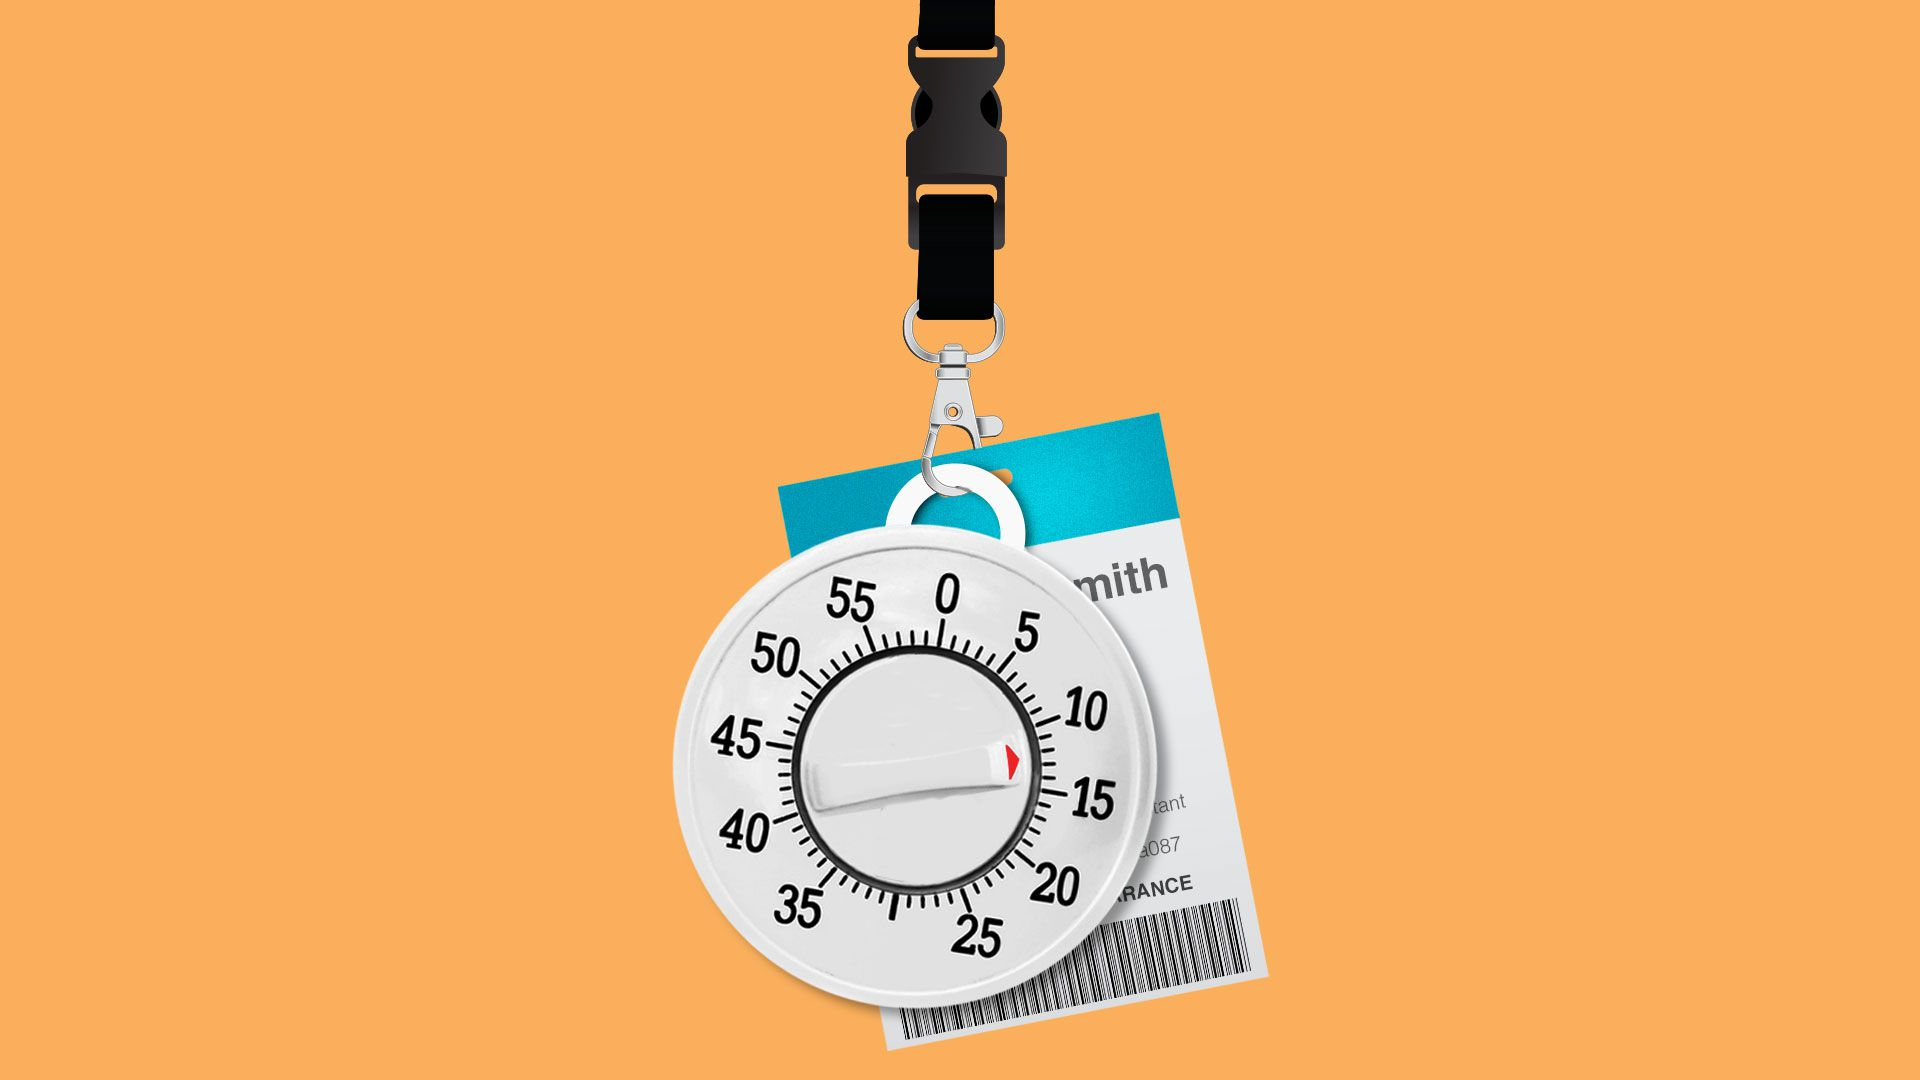 Illustration of an employee badge and egg timer on a lanyard.